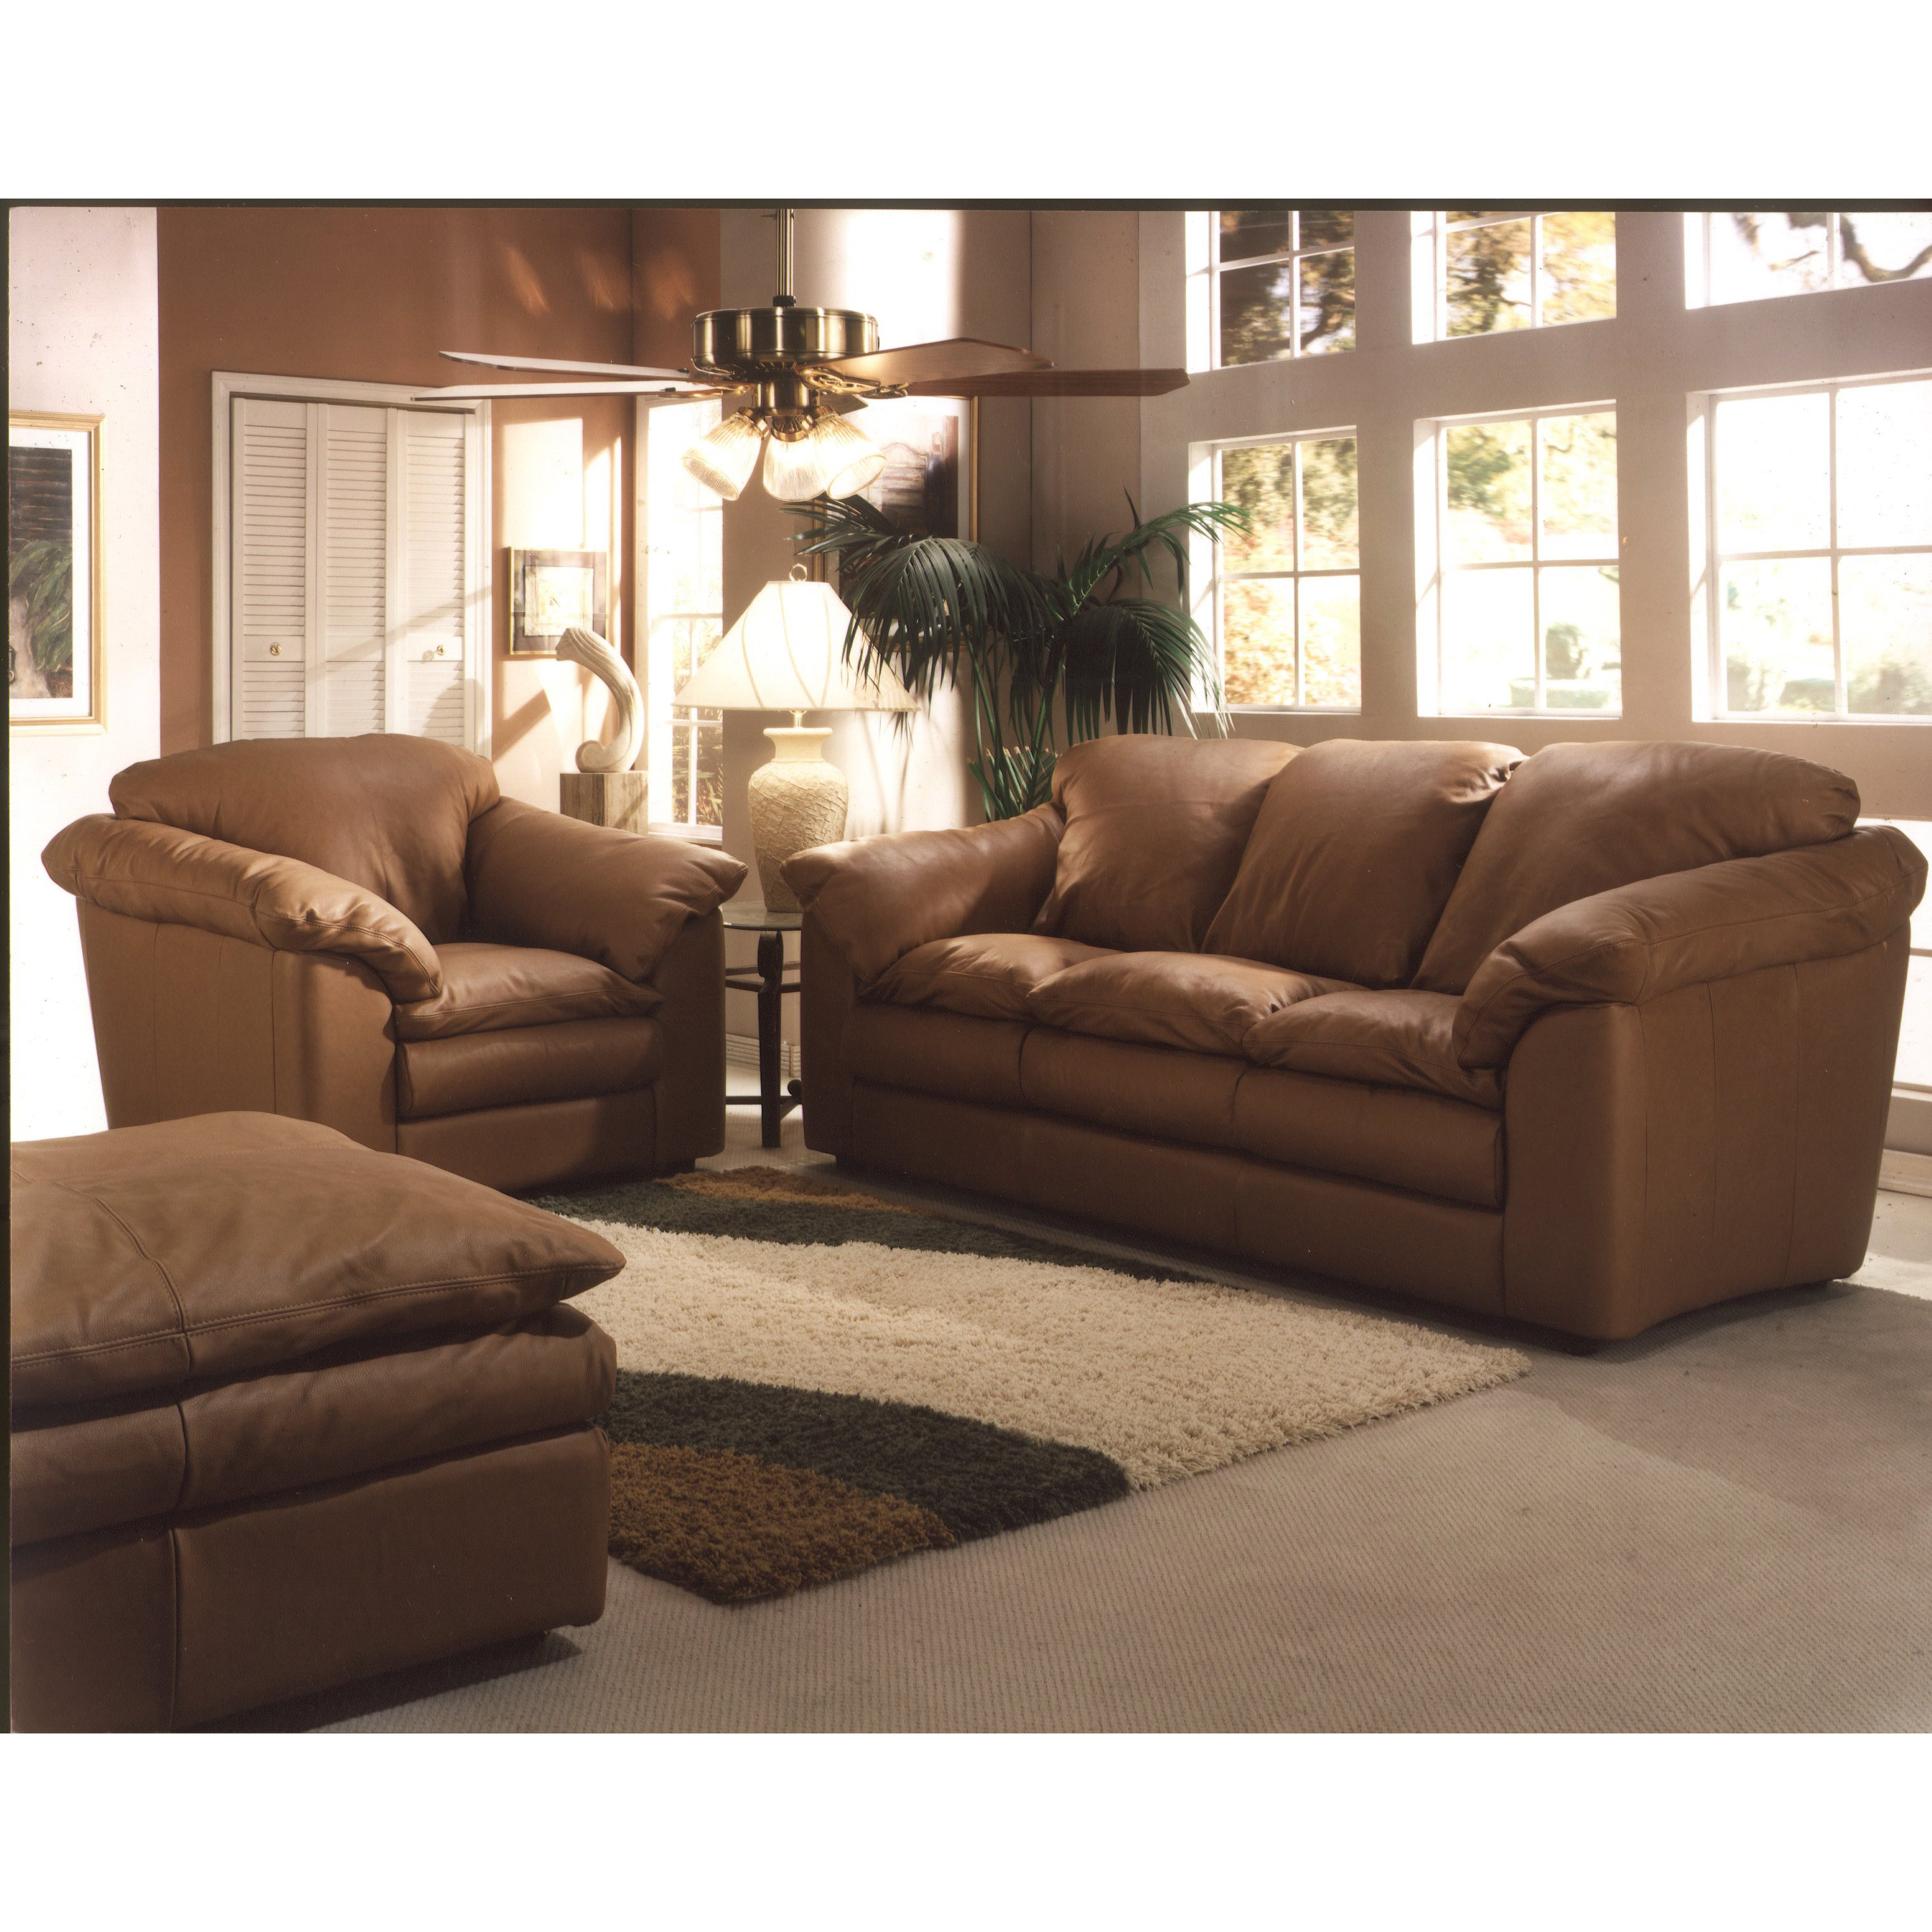 Best ideas about Wayfair Living Room Furniture . Save or Pin Omnia Leather Oregon 3 Seat Leather Living Room Set Now.